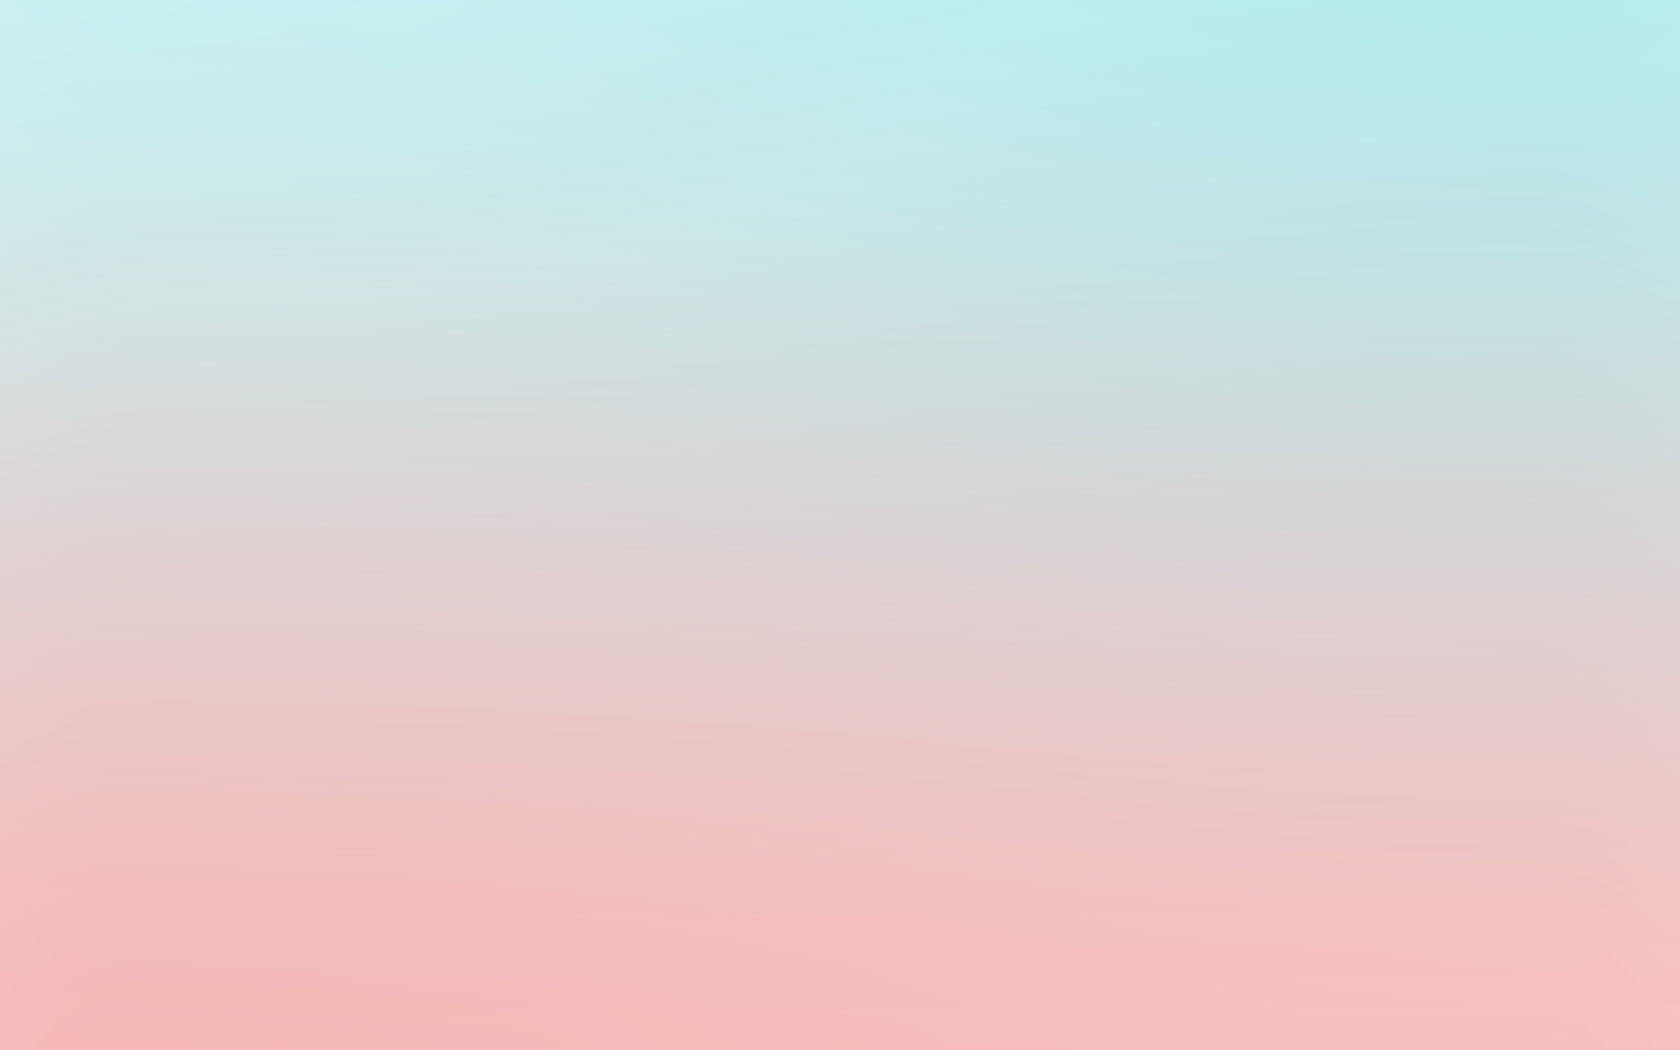 Anime A Fall Wallpaper Sm40 Blue Red Soft Pastel Blur Gradation Wallpaper